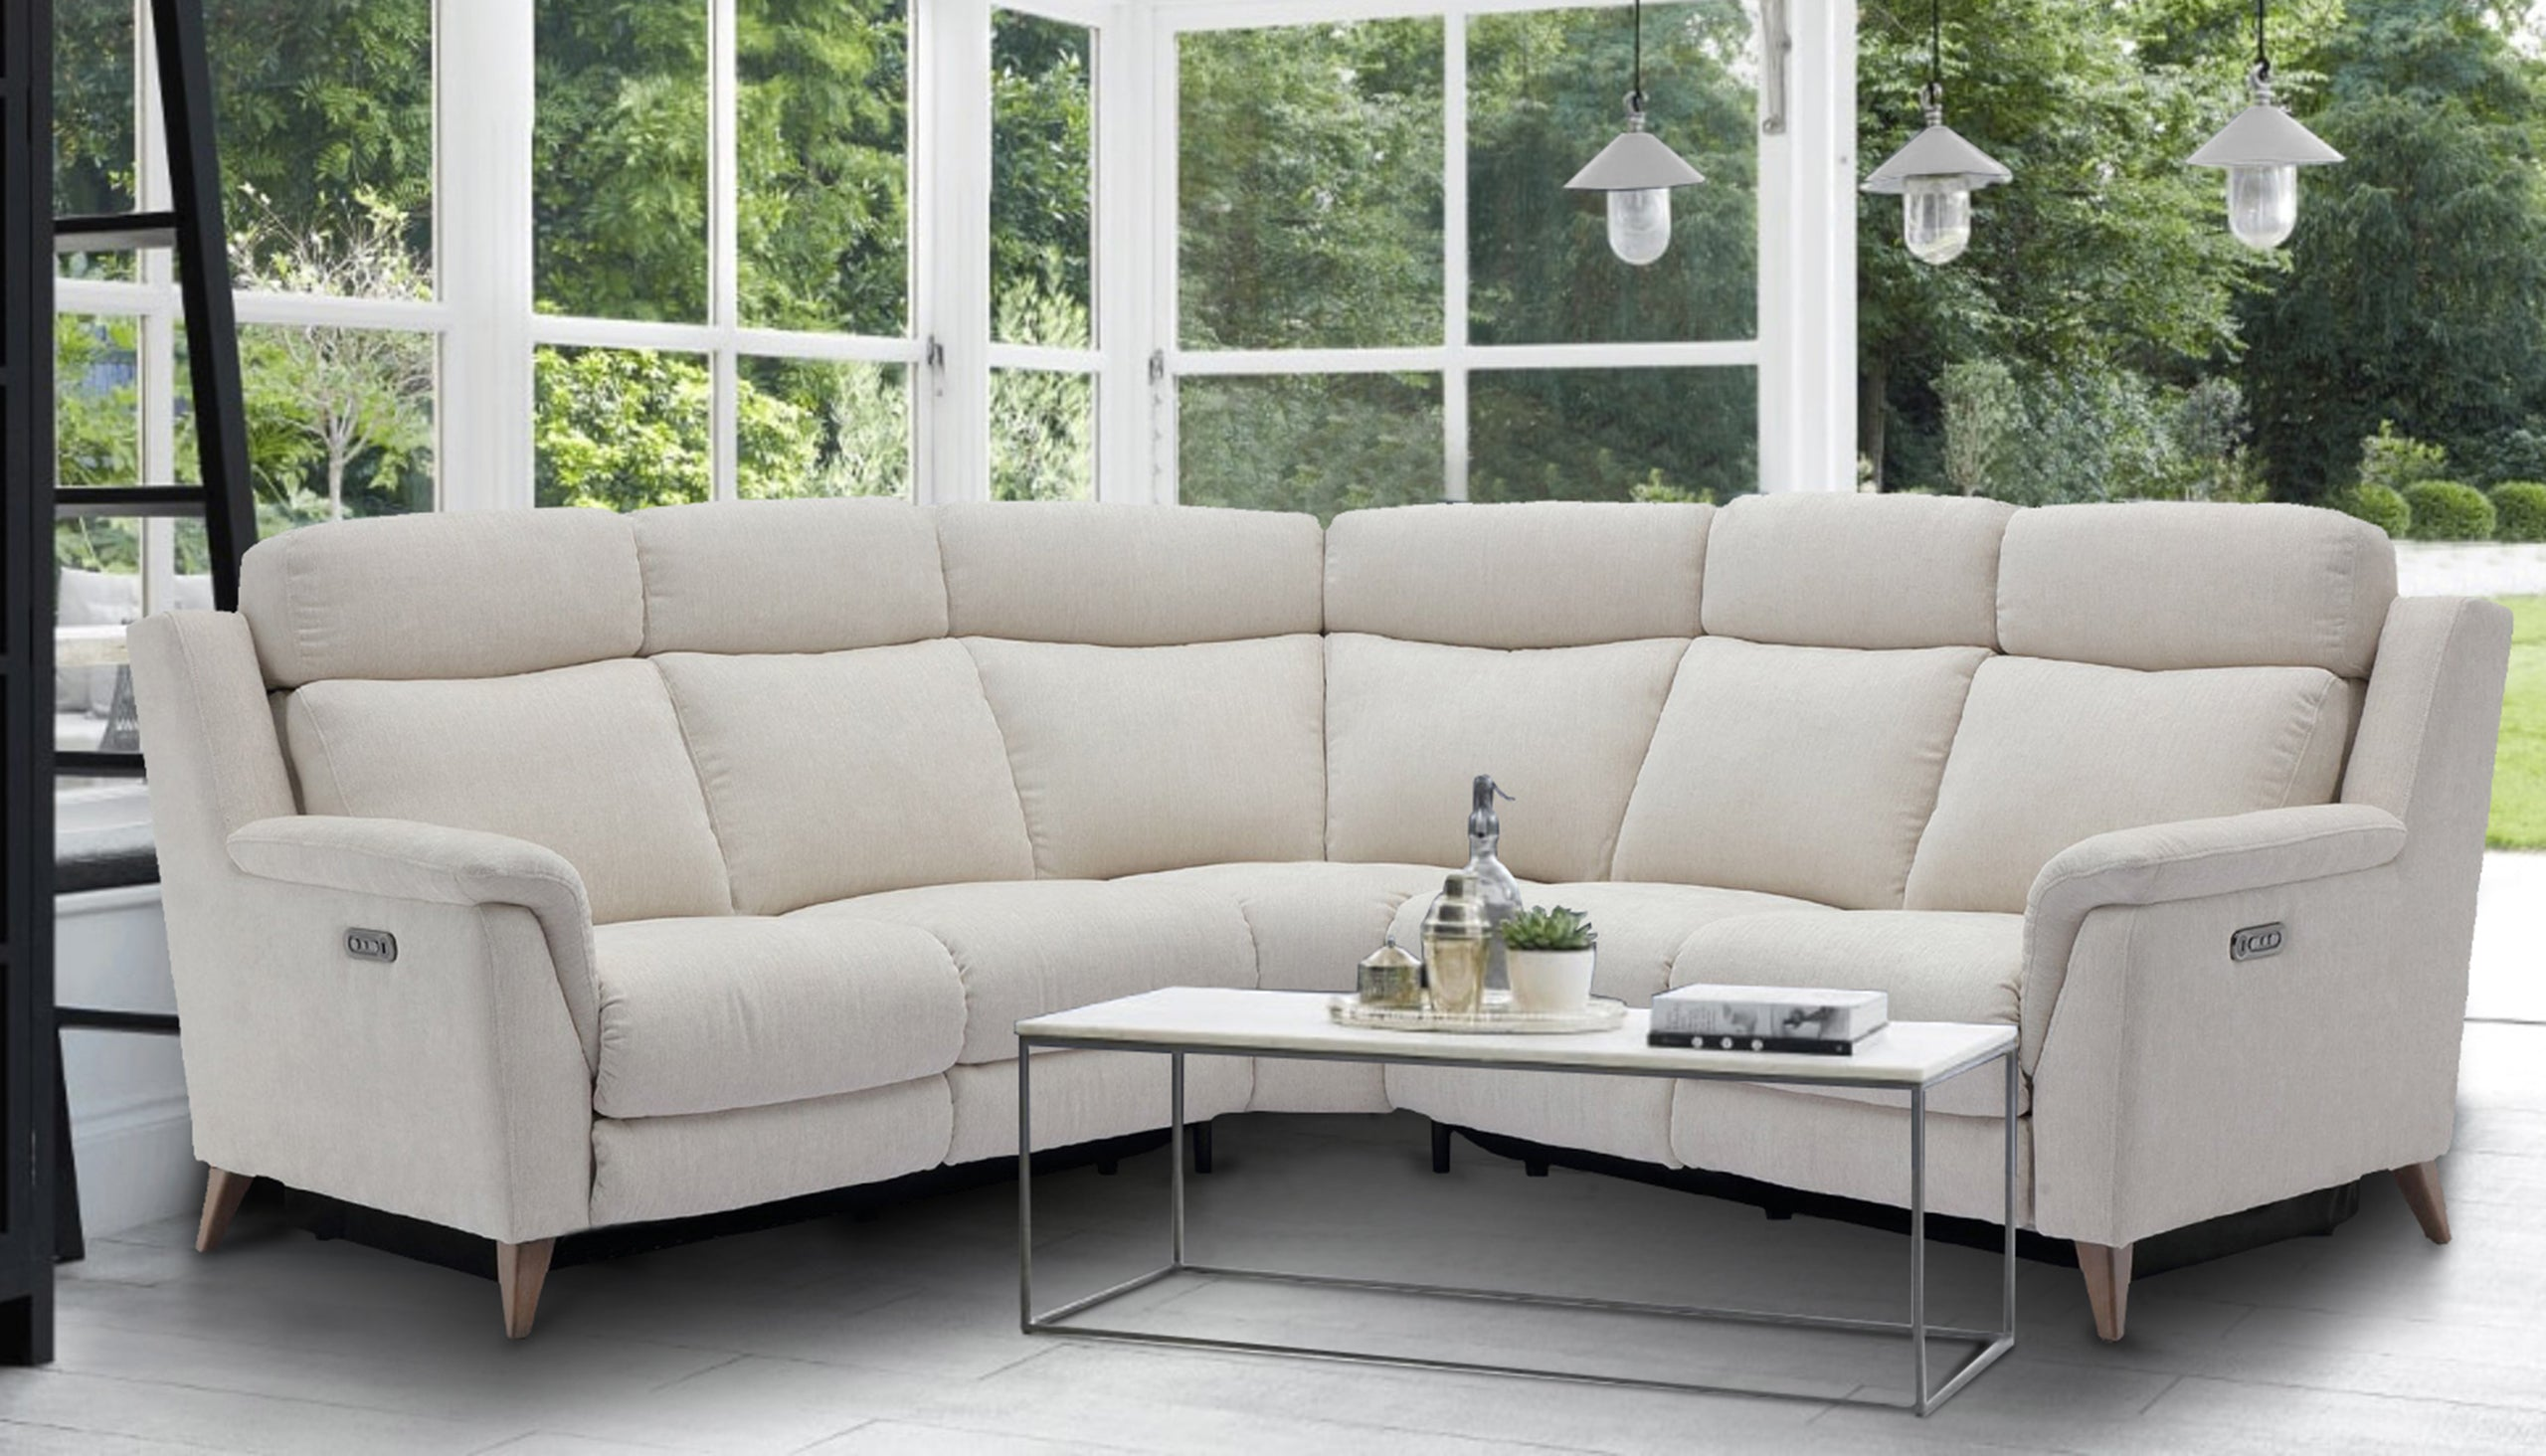 Picture of: Fabb Fabric Recliners Fabb Furniture